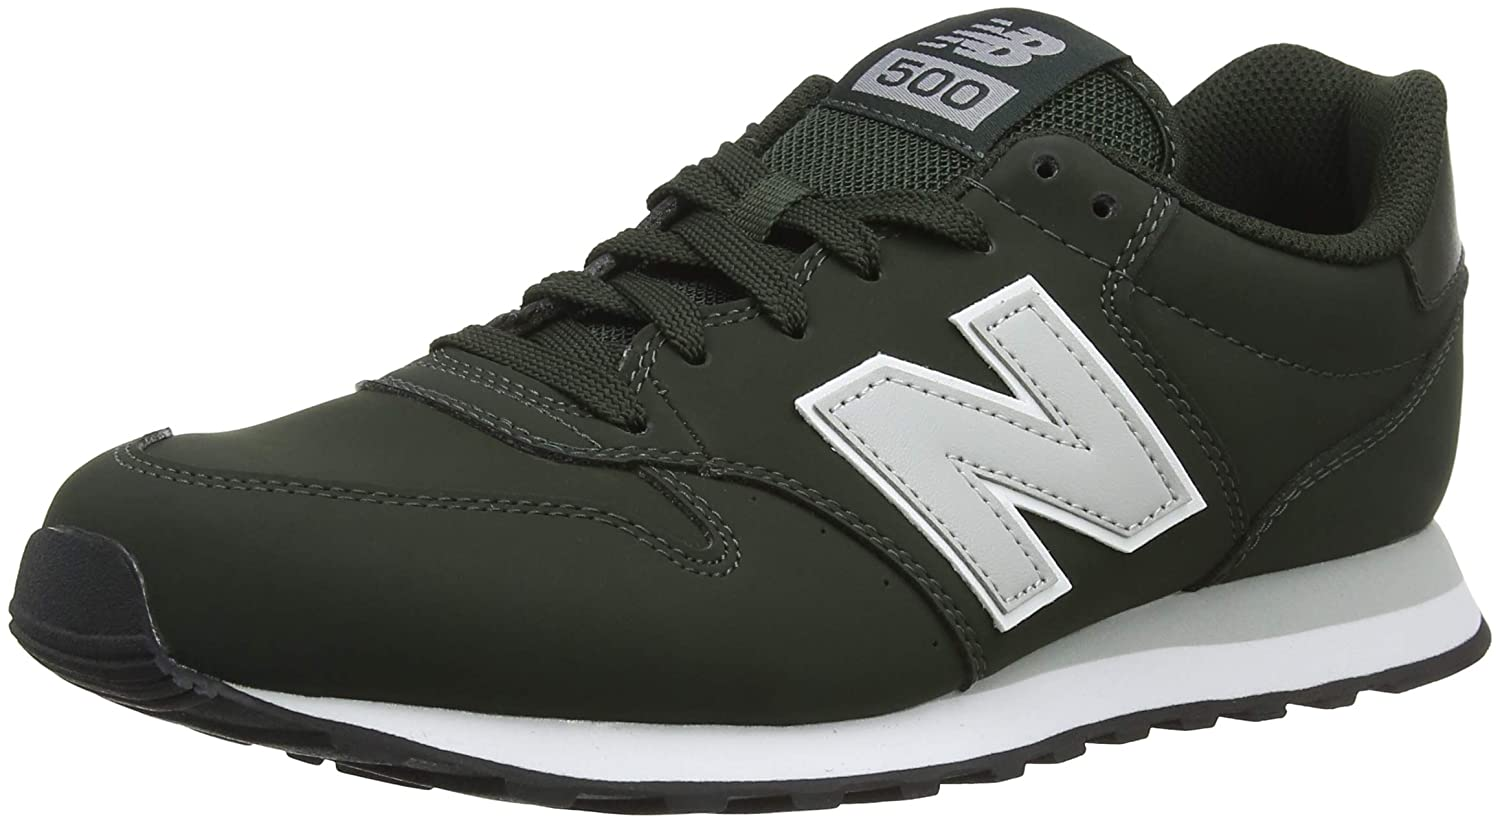 GM500GRG Sneakers verdi uomo new balance | MecShopping